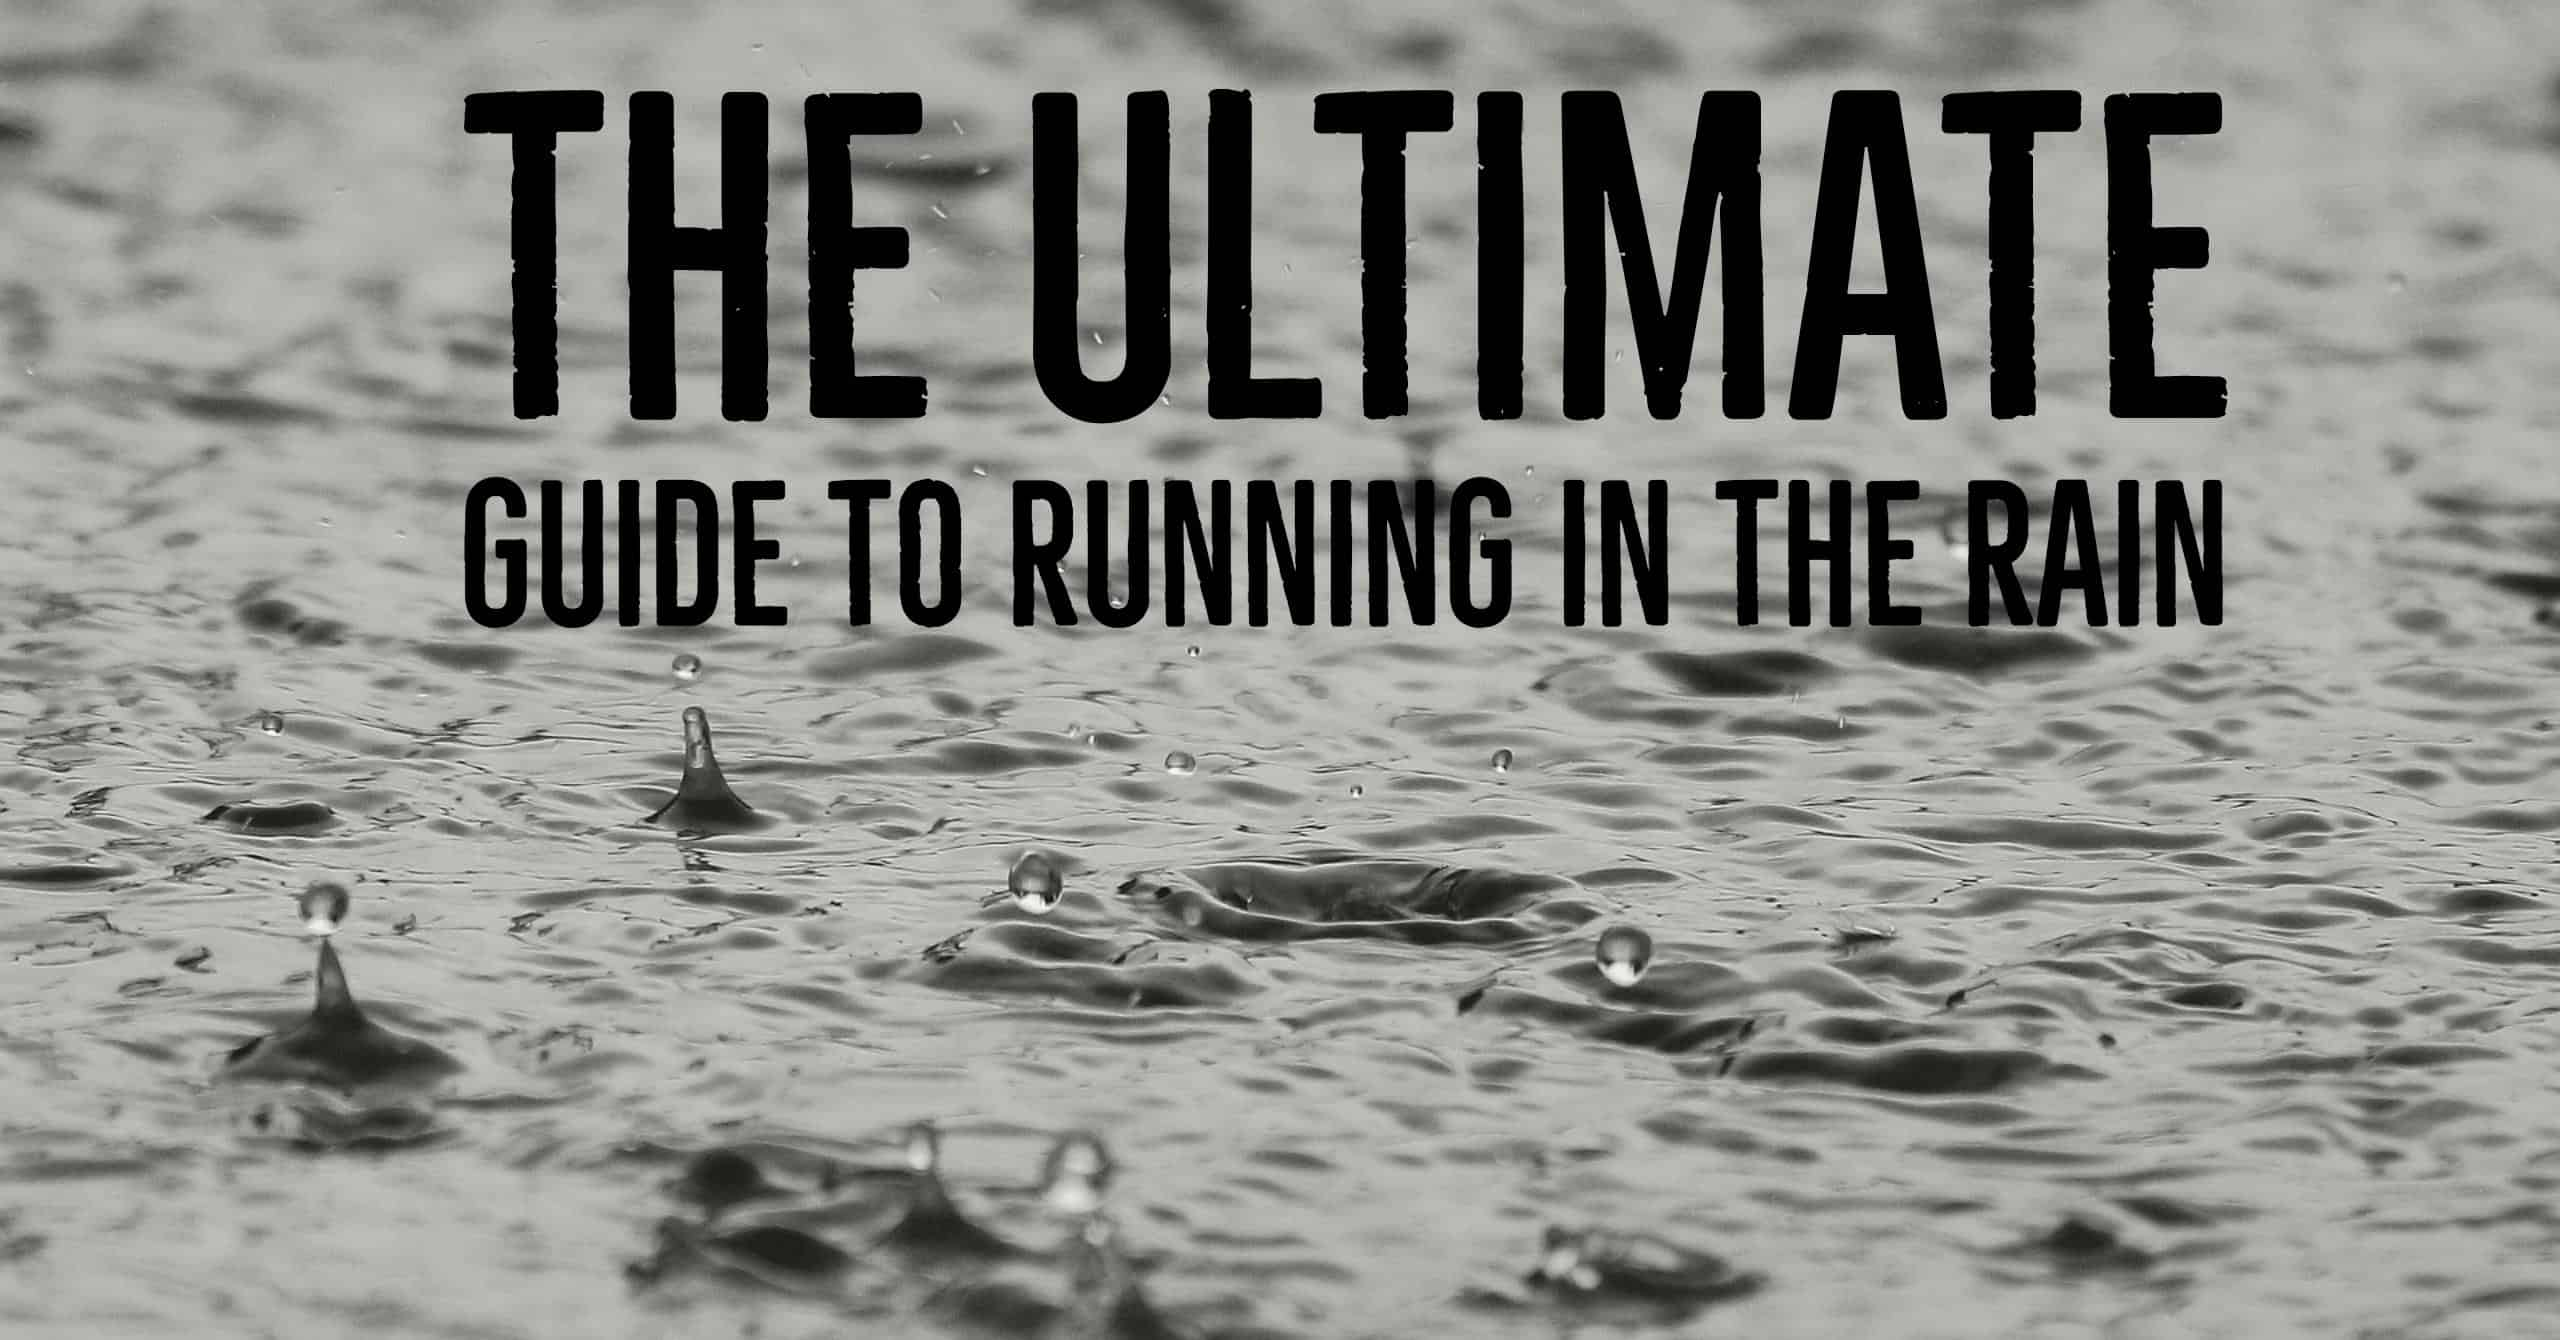 The Ultimate Guide to Running in the Rain